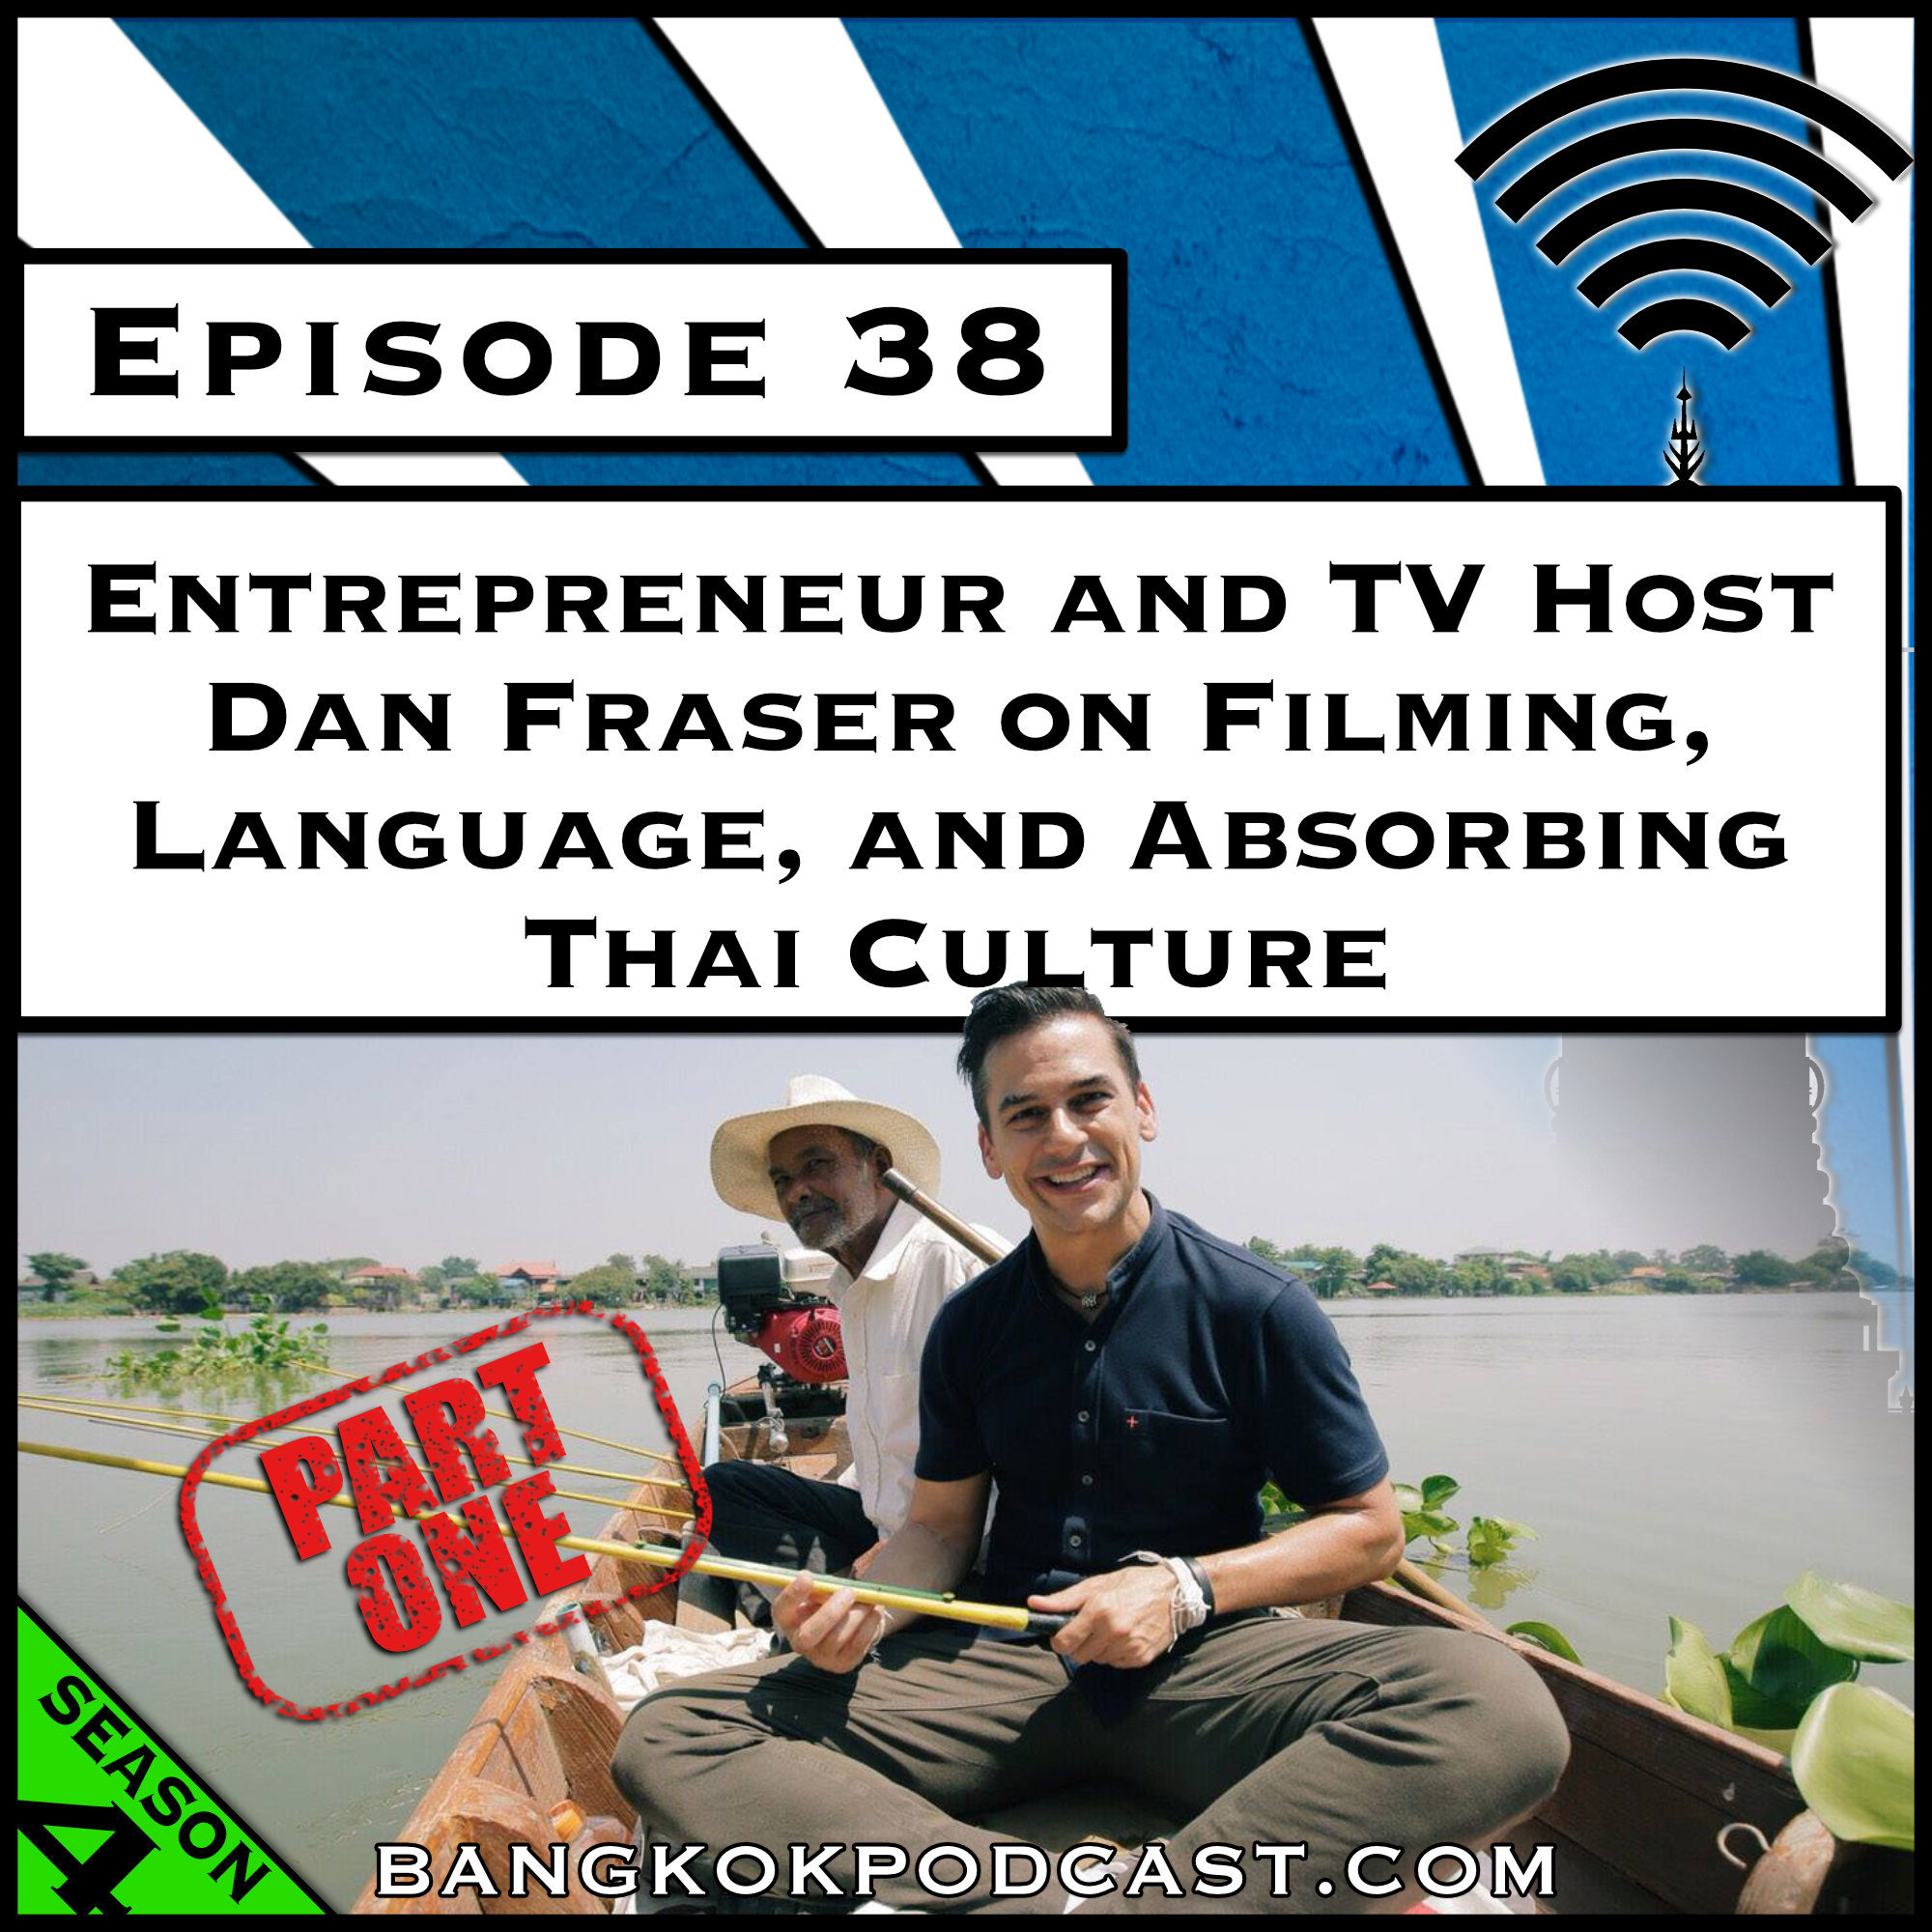 Entrepreneur and TV Host Dan Fraser on Filming, Language, and Absorbing Thai Culture [Season 4, Episode 38]